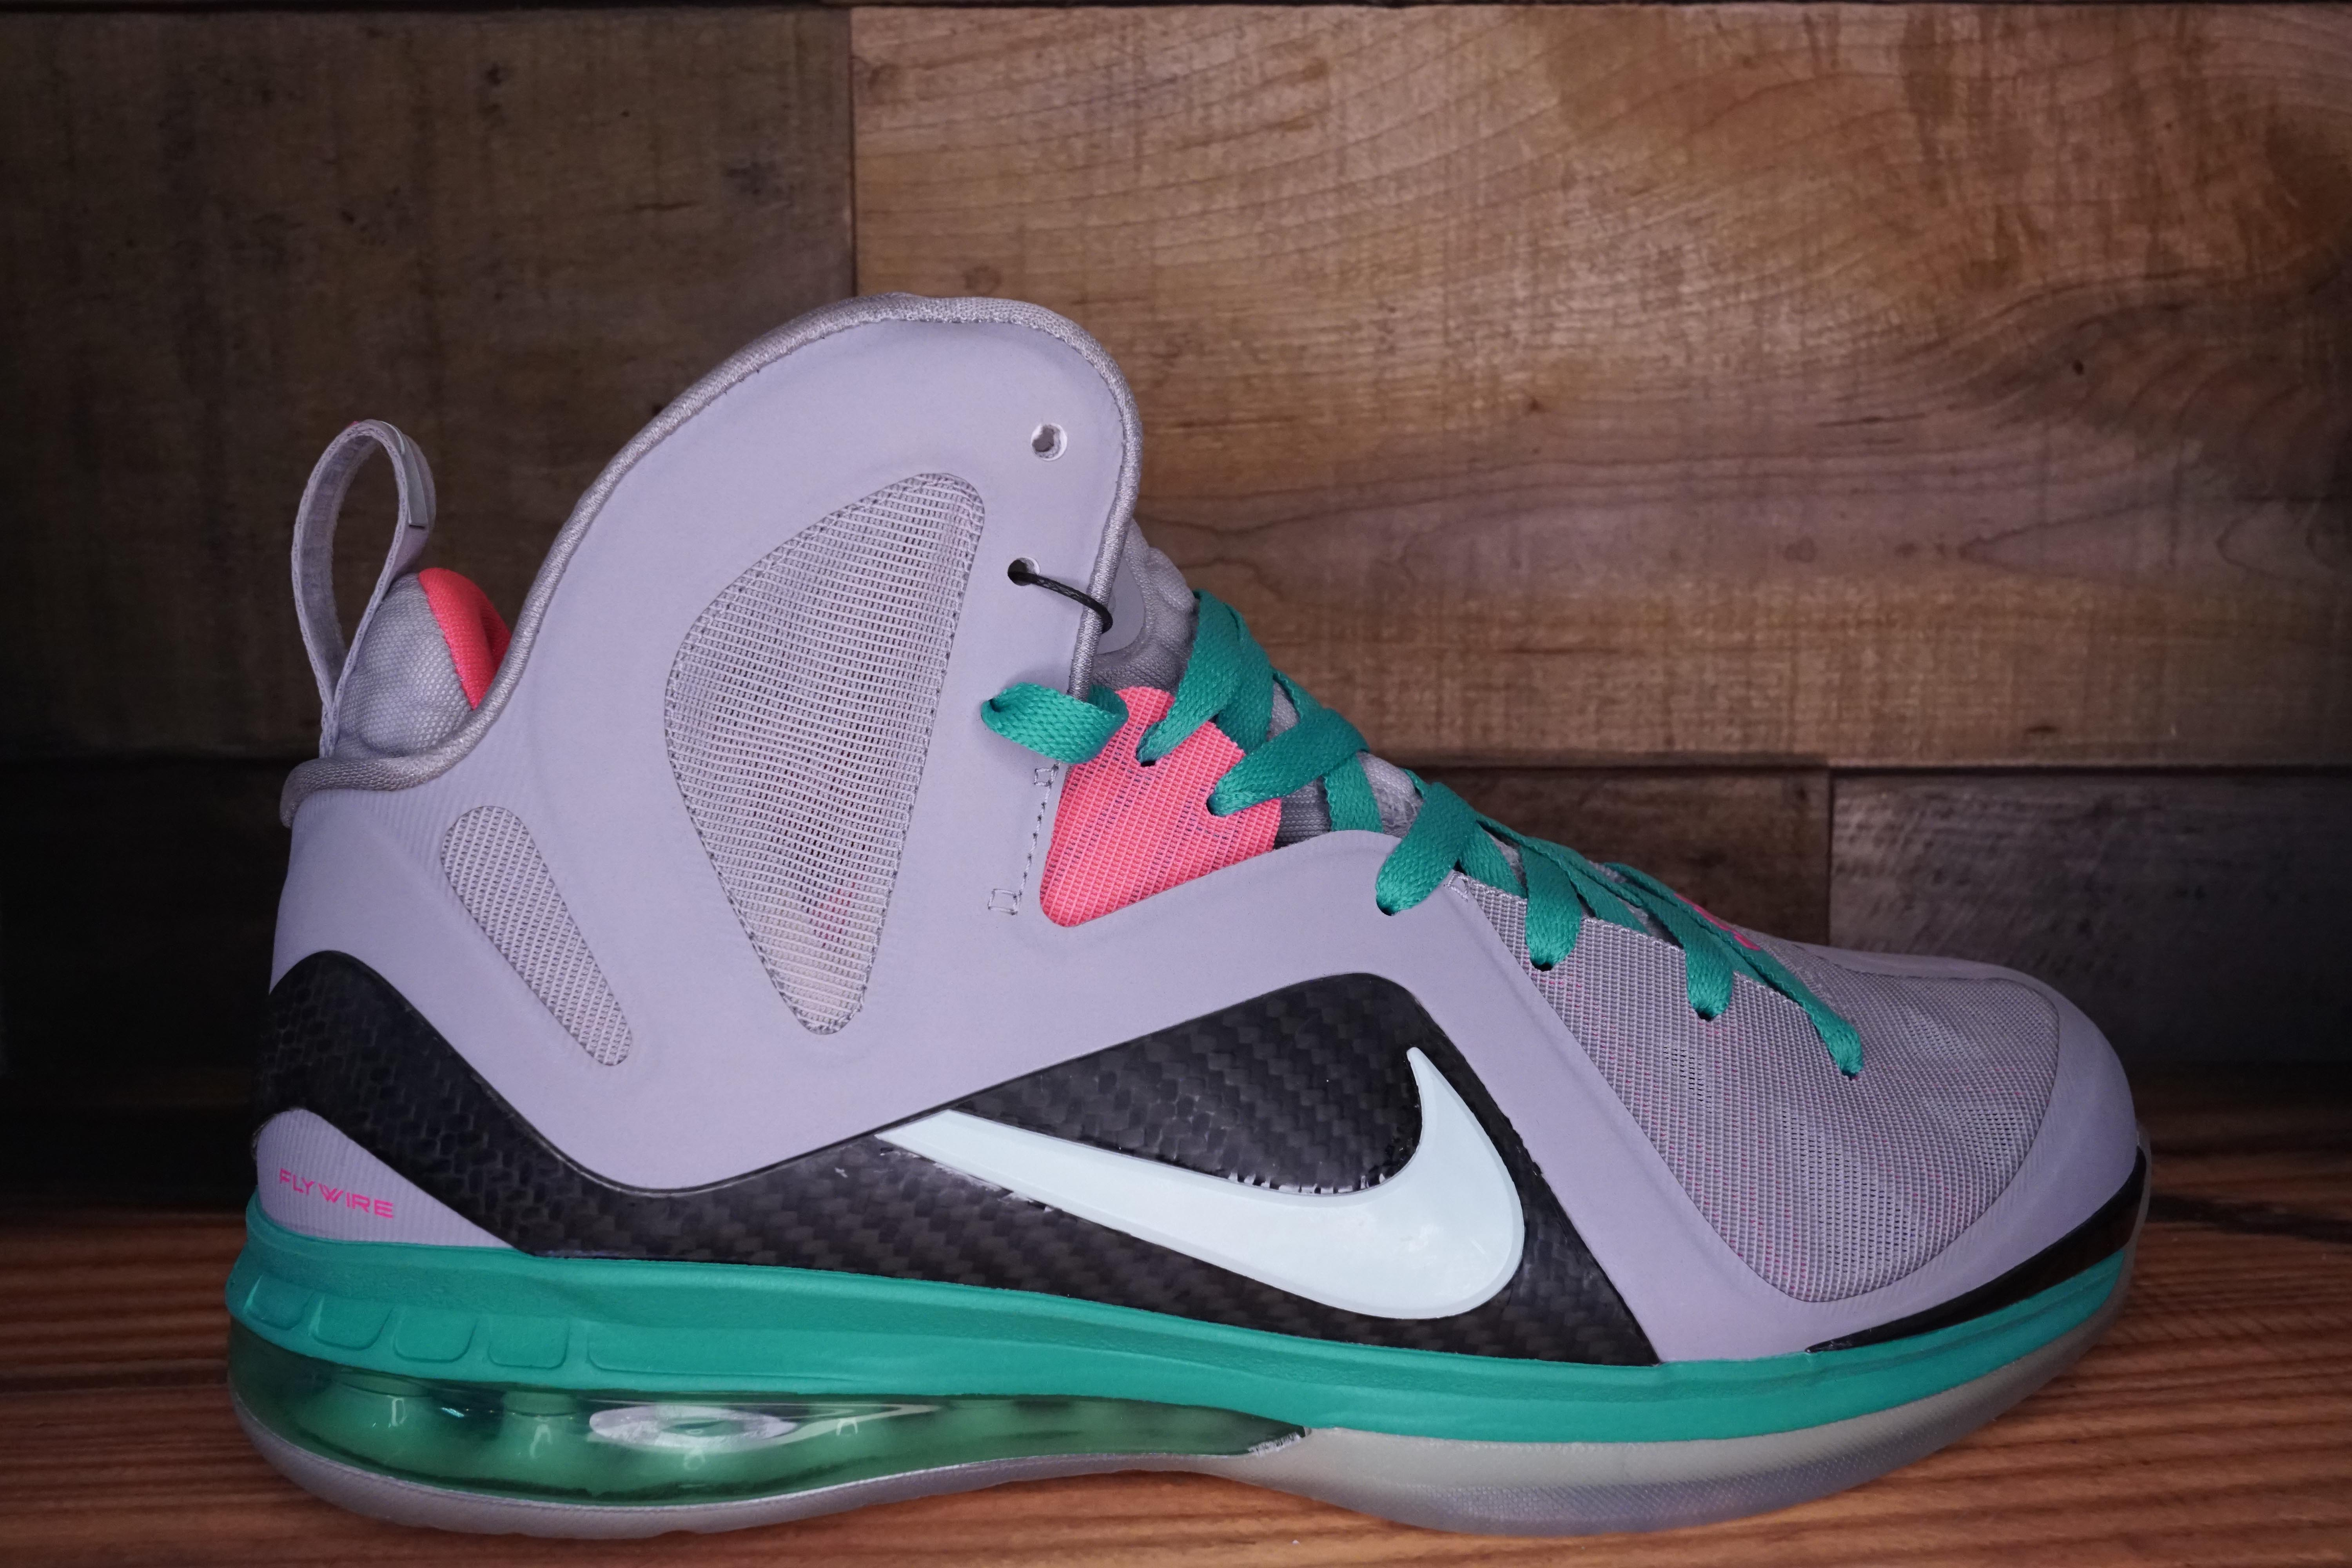 competitive price 637f5 d3ad2 LeBron-James-9-Elite-SOUTH-BEACH-2012-New-